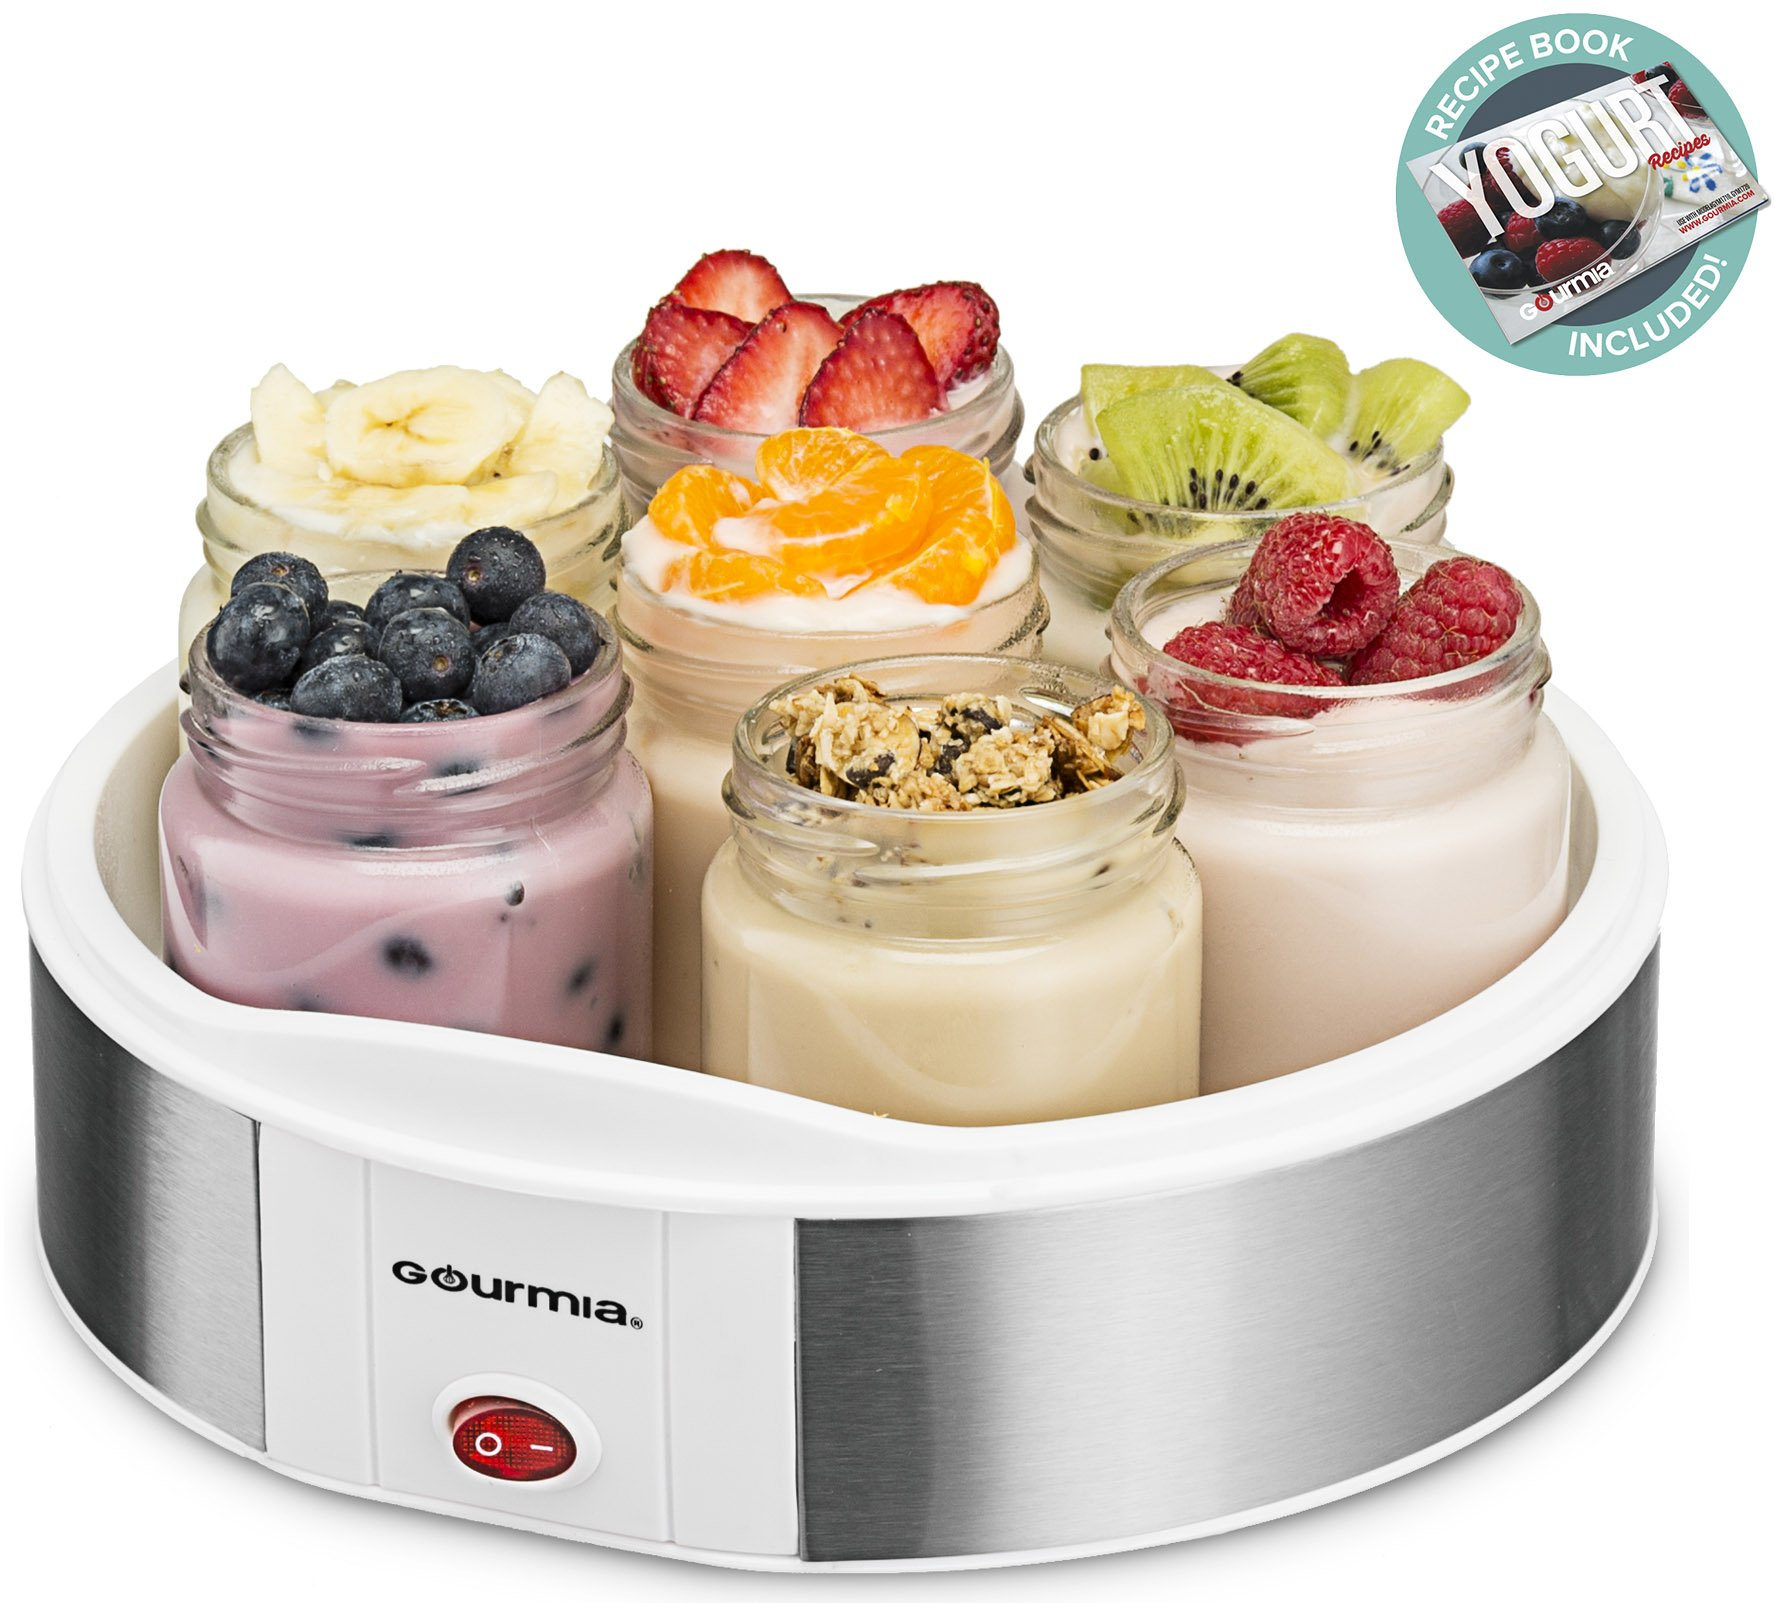 Gourmia GYM1610 Auto Yogurt Maker - 7 Glass Jars - Customize Flavor & Thickness - Free Recipe Book Included